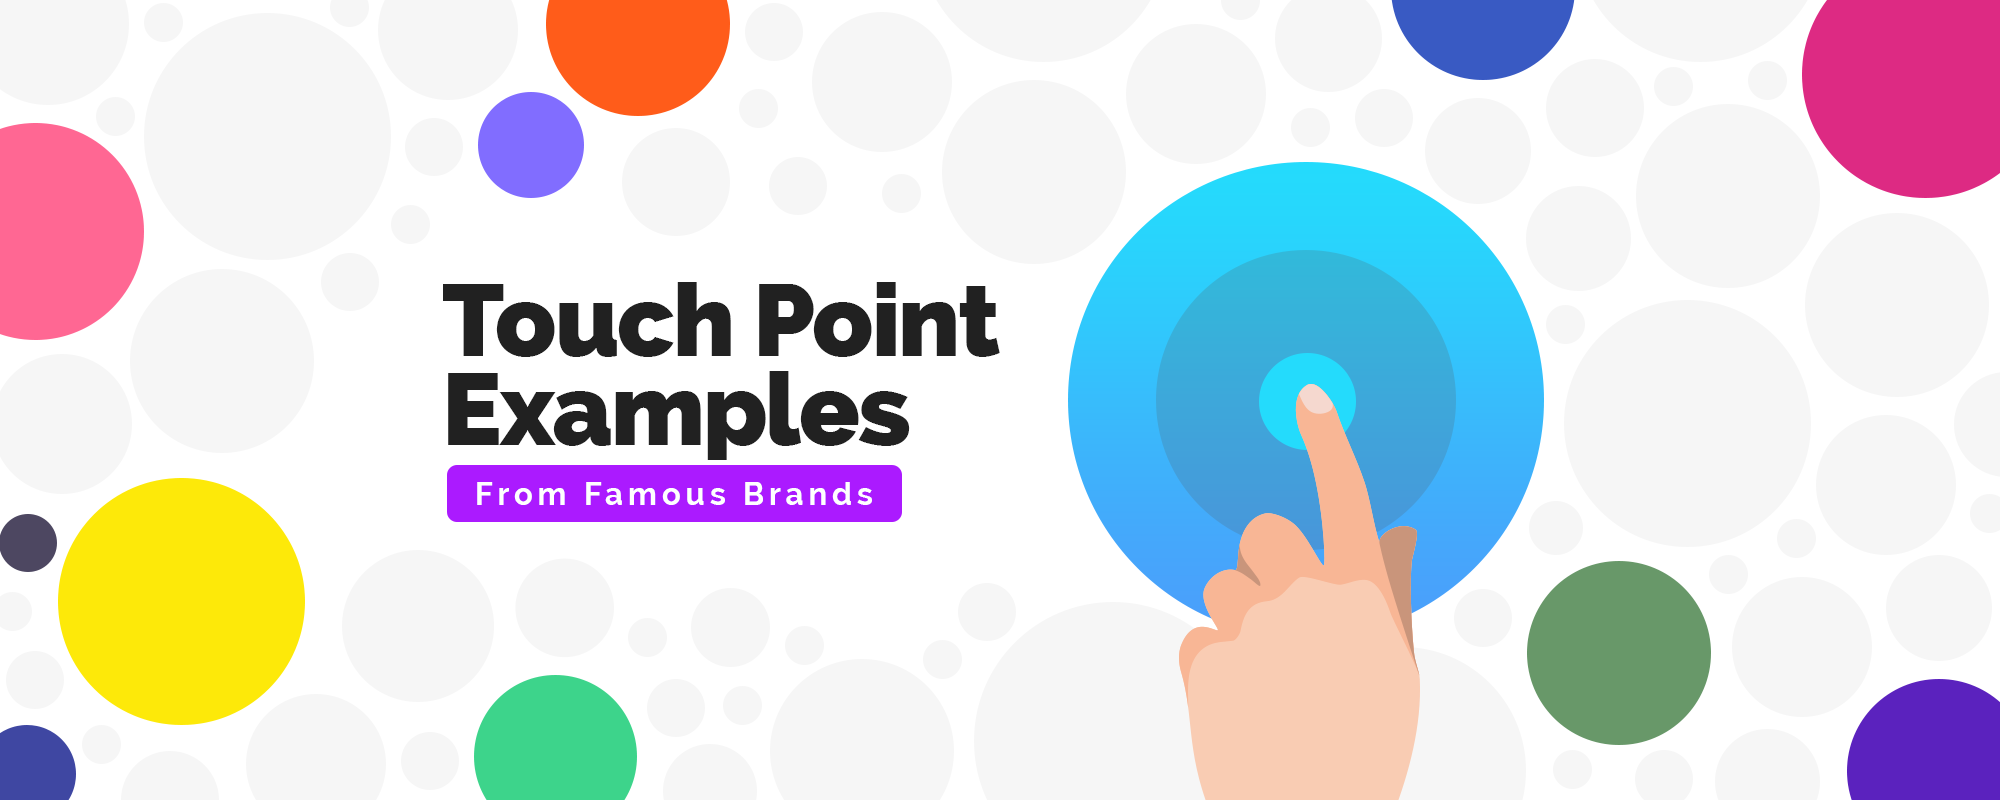 19 Touch Point Examples From Famous Brands